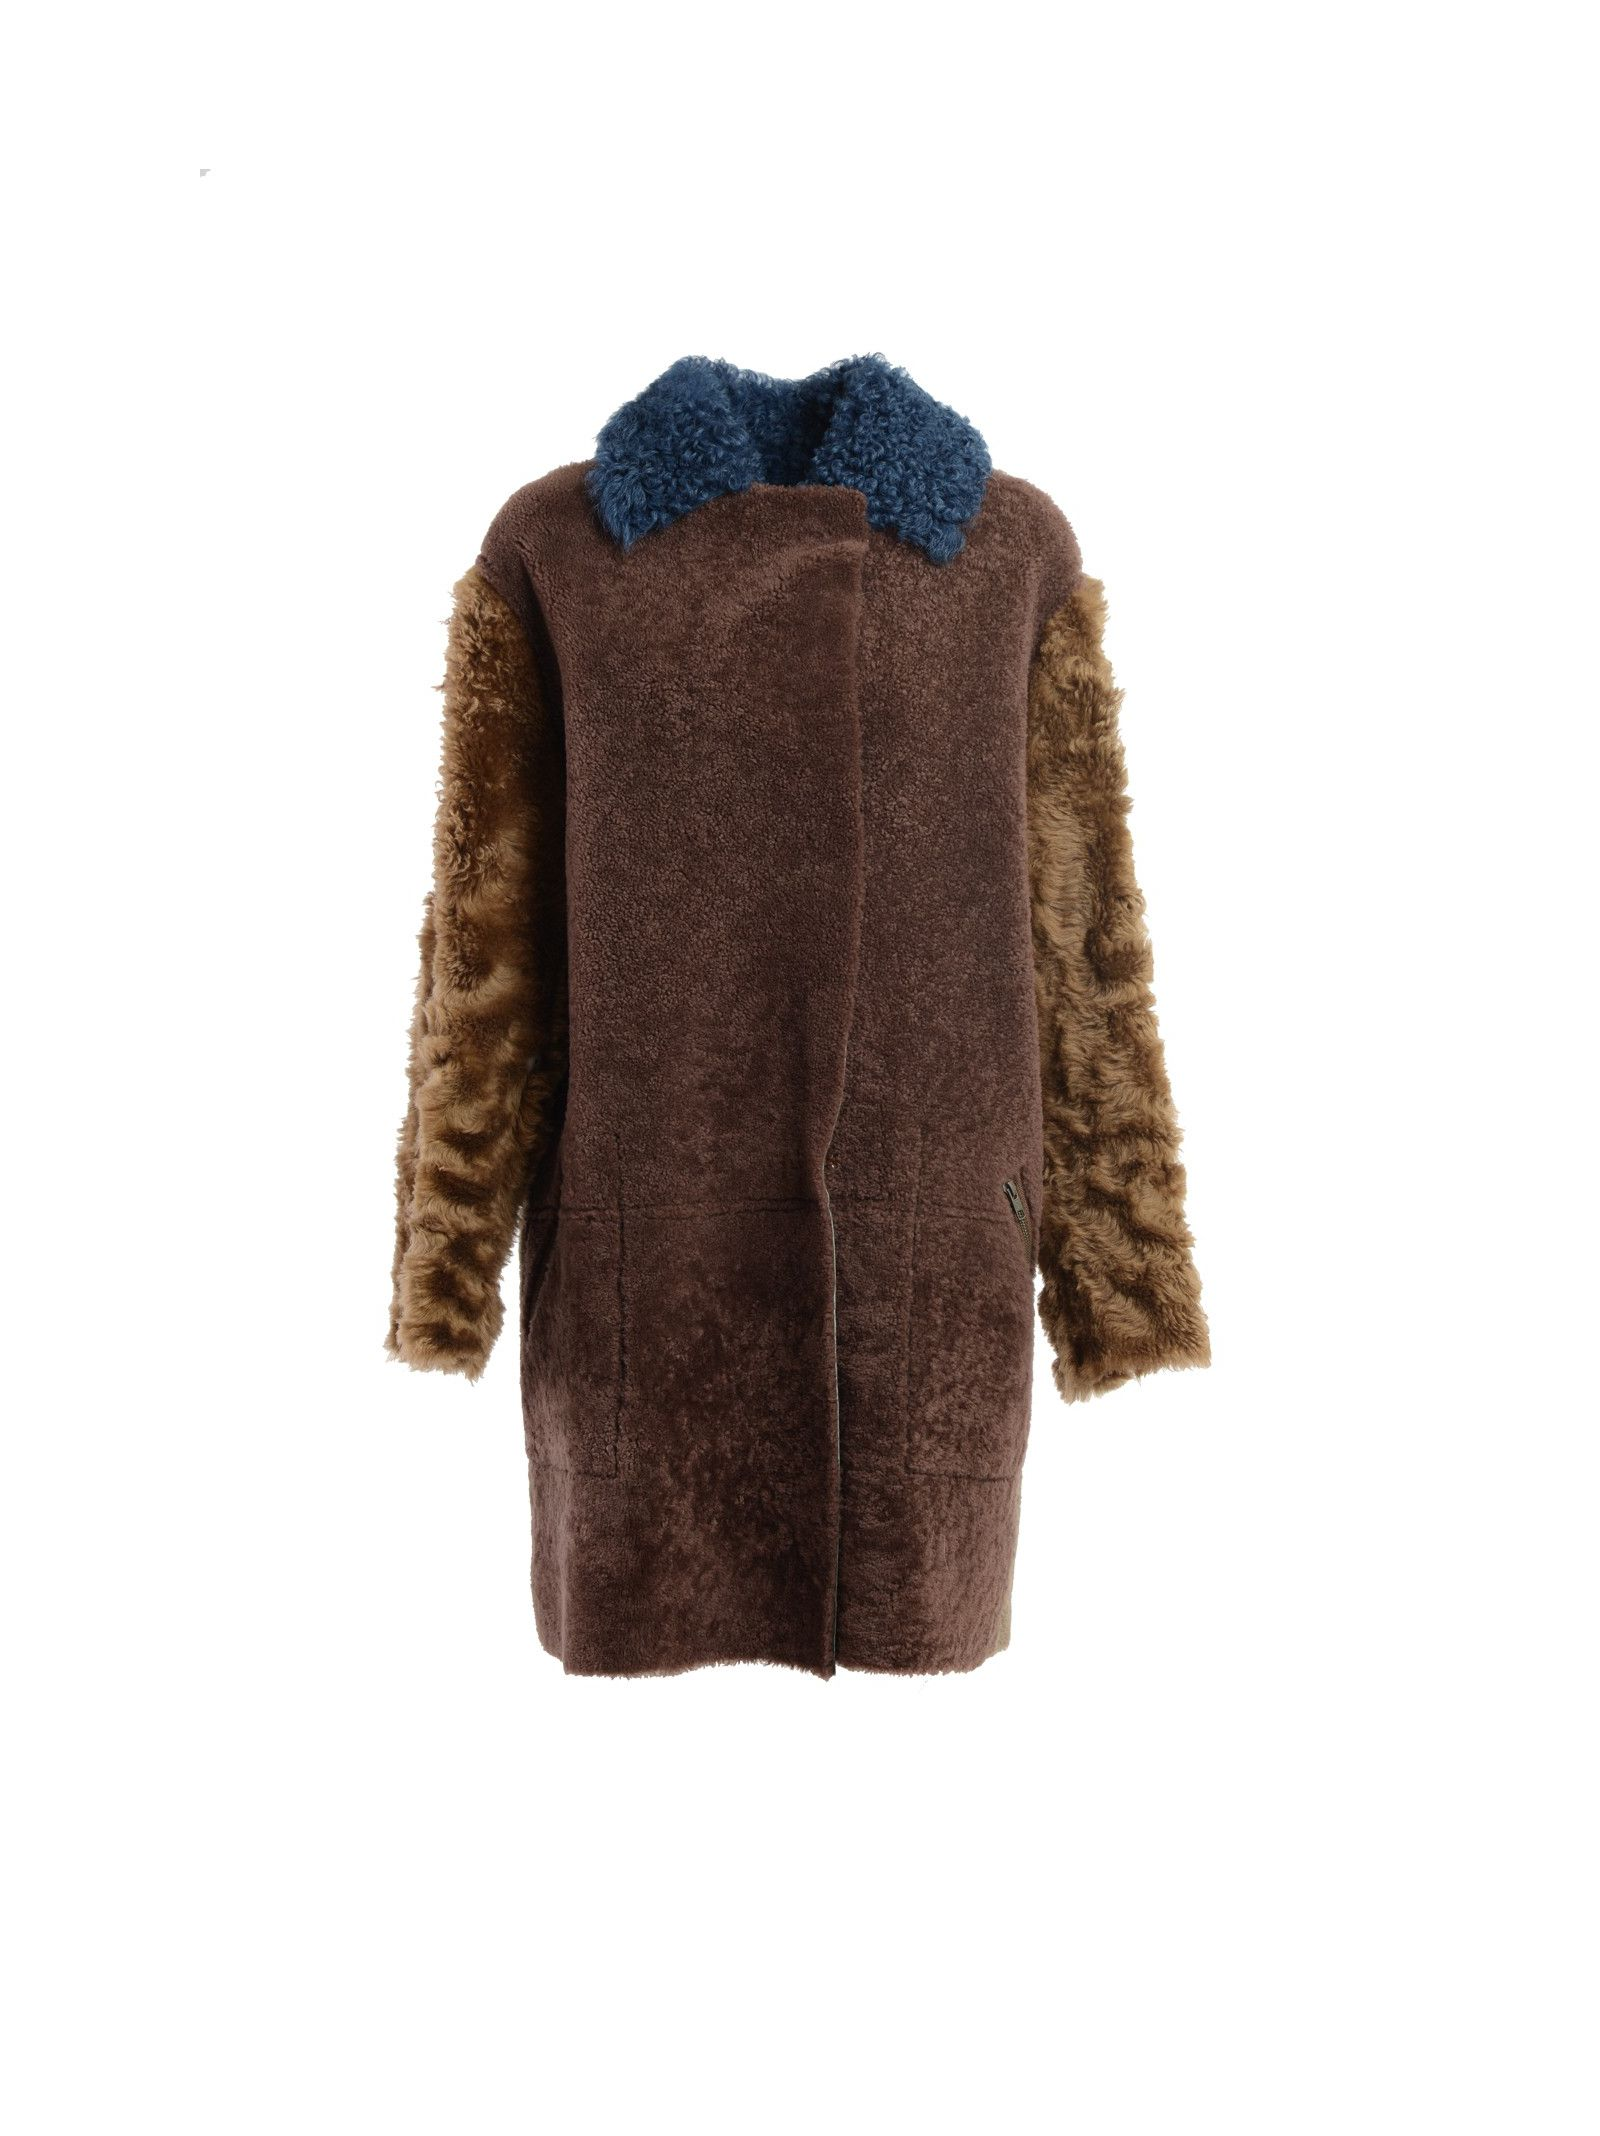 Leather and faux-fur coat Details: Leather and fur coat, Multicolour fur patchwork on one side, Soft leather on the other, Two side pockets on both sides